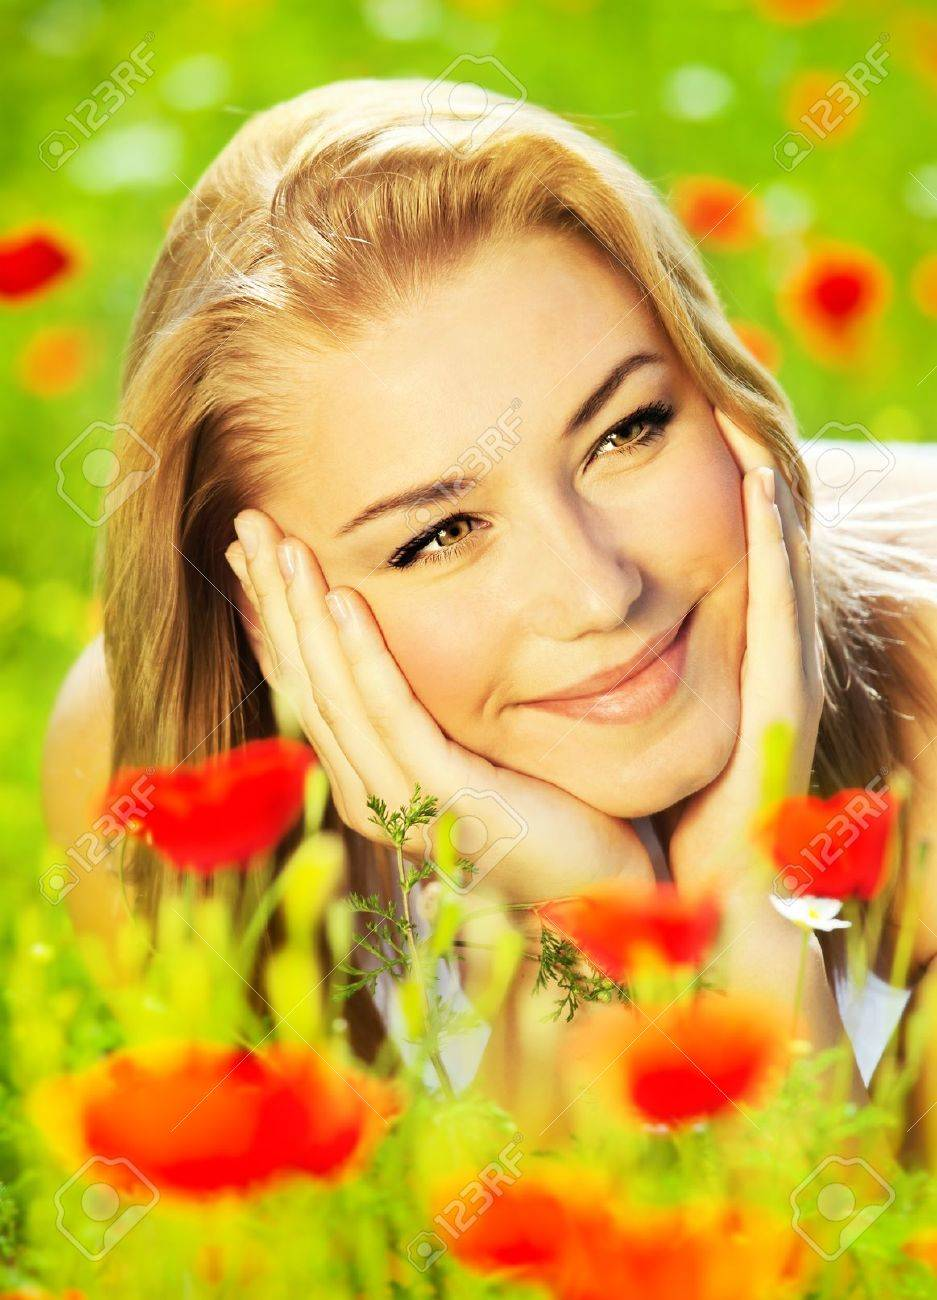 Lovely happy female closeup portrait, lying down in the poppy flower field, enjoying nature, summertime leisure concept Stock Photo - 10082406